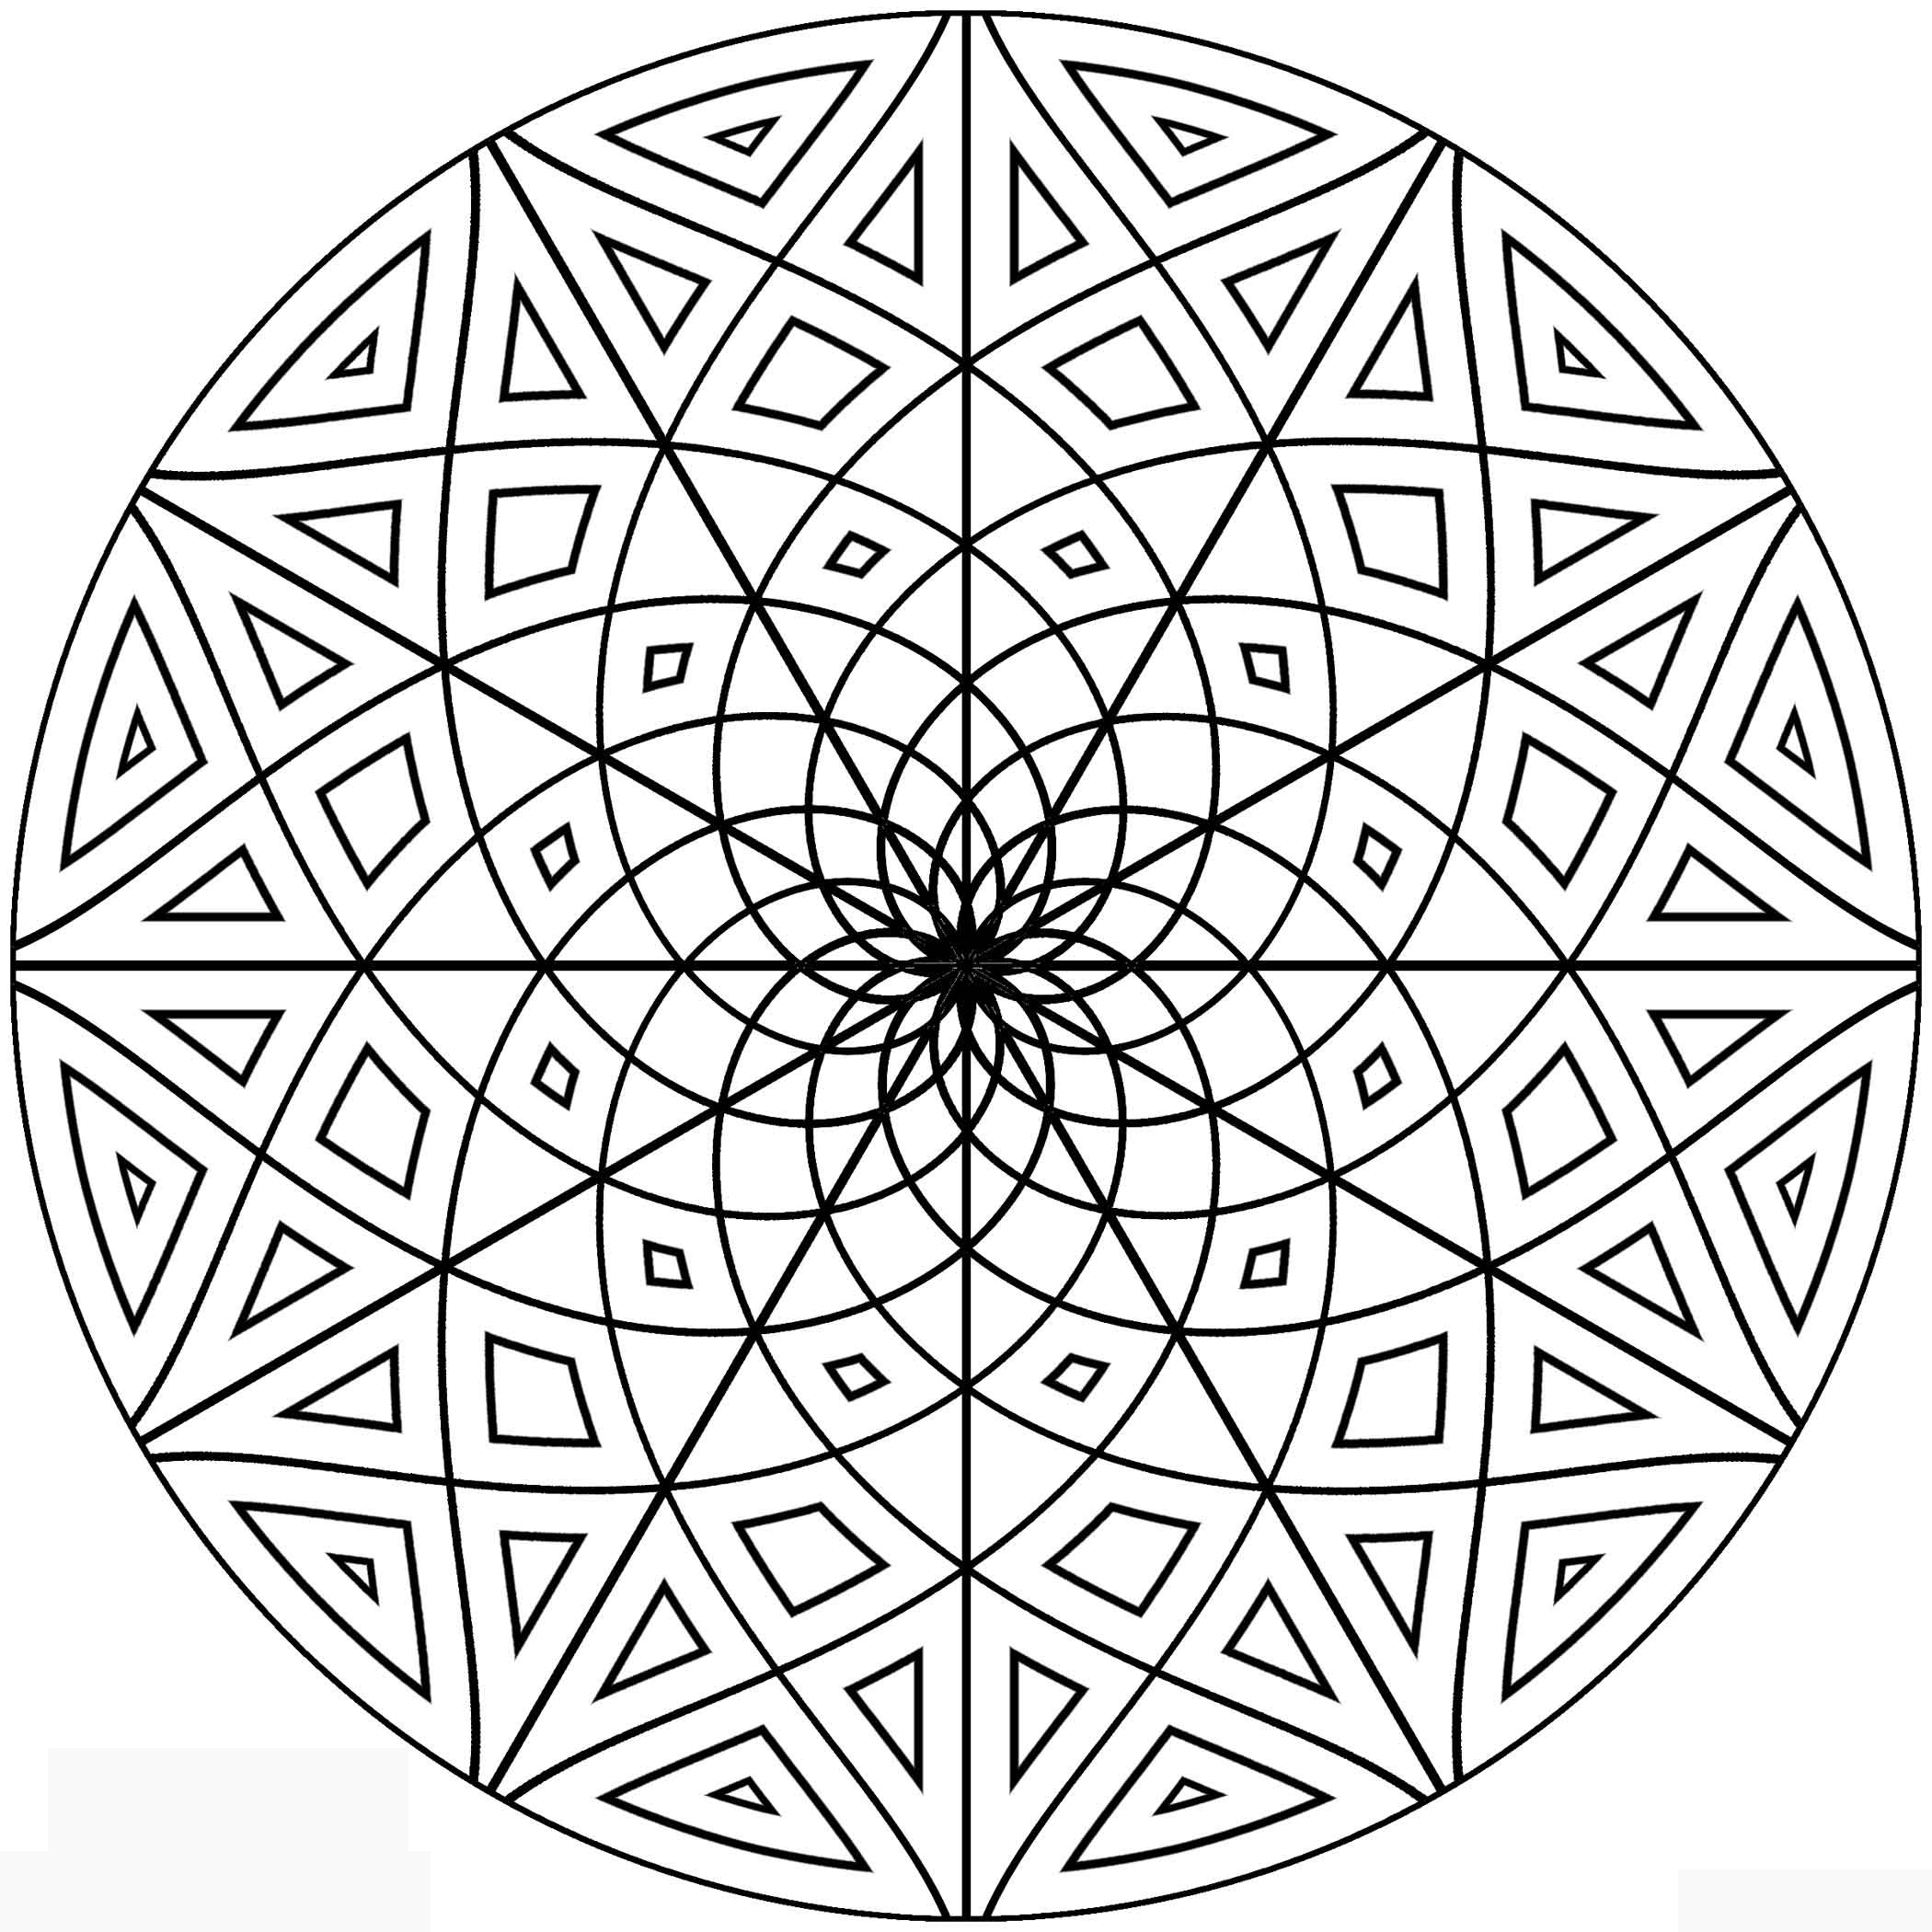 coloring pages for adults geometric - photo#24